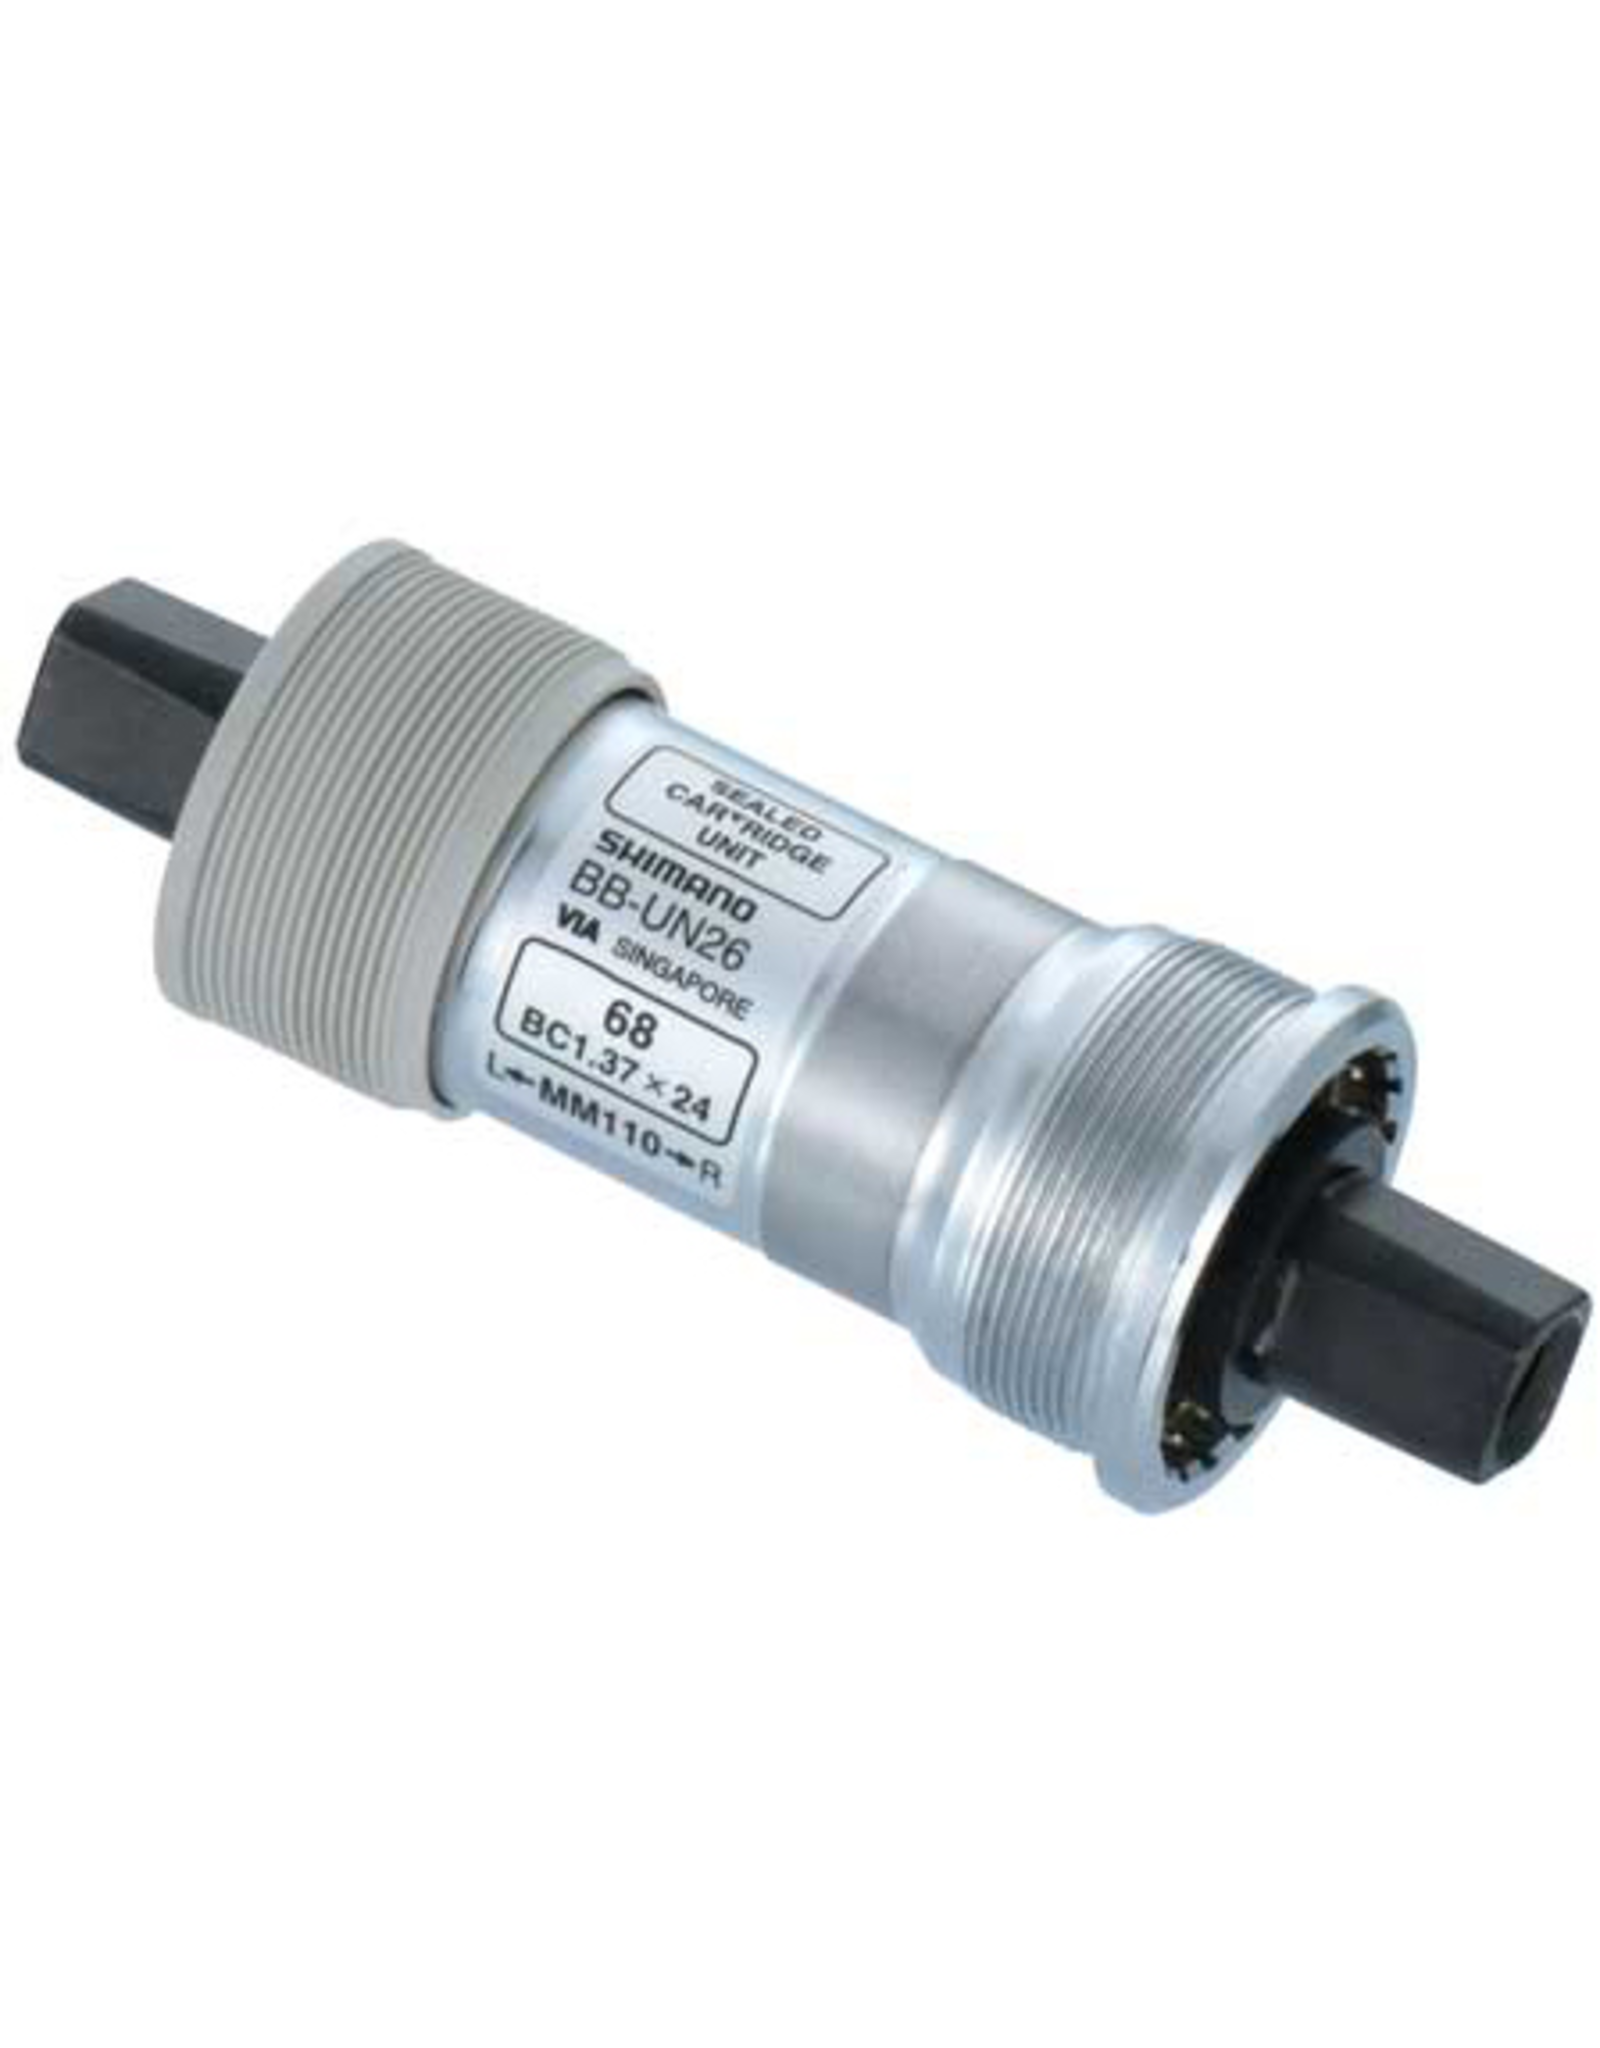 Shimano BOTTOM BRACKET SHIMANO BB-UN26 68 X 113MM